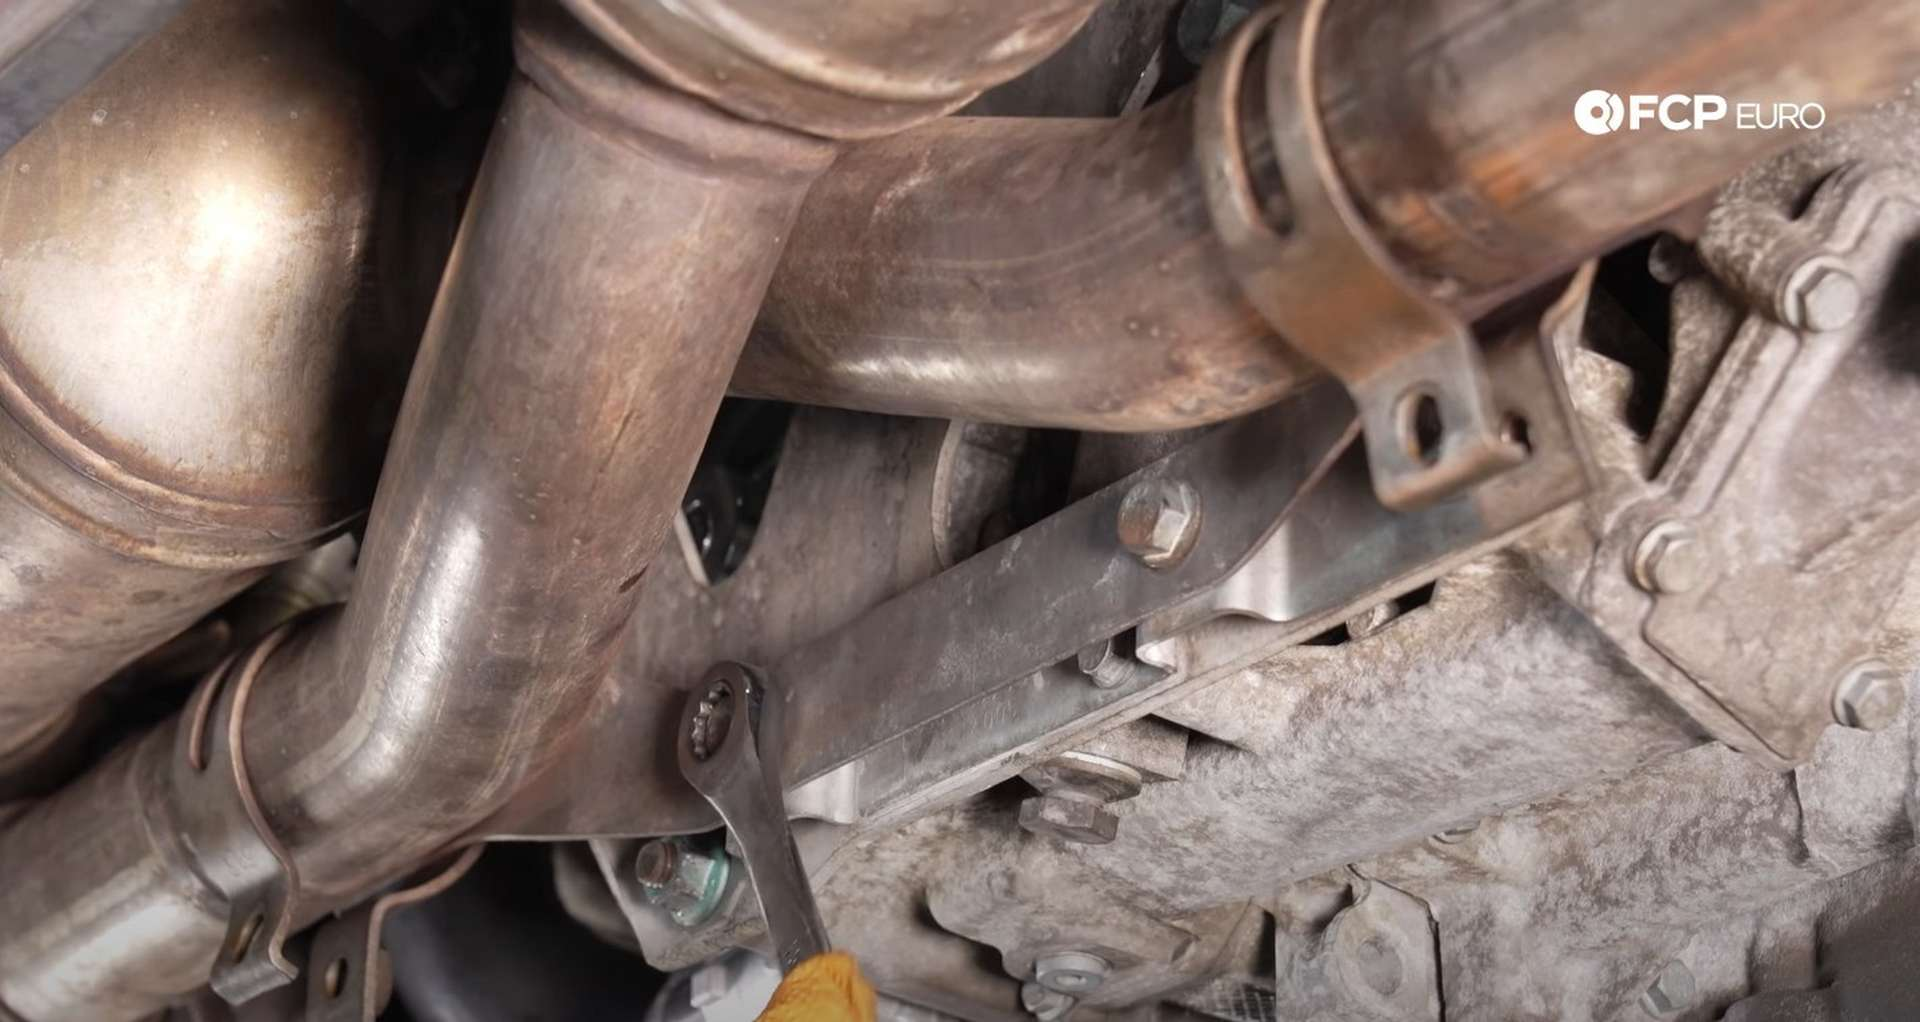 DIY Porsche 996 911 Water Pump And Thermostat Replacement tightening the exhaust bracket's bolts